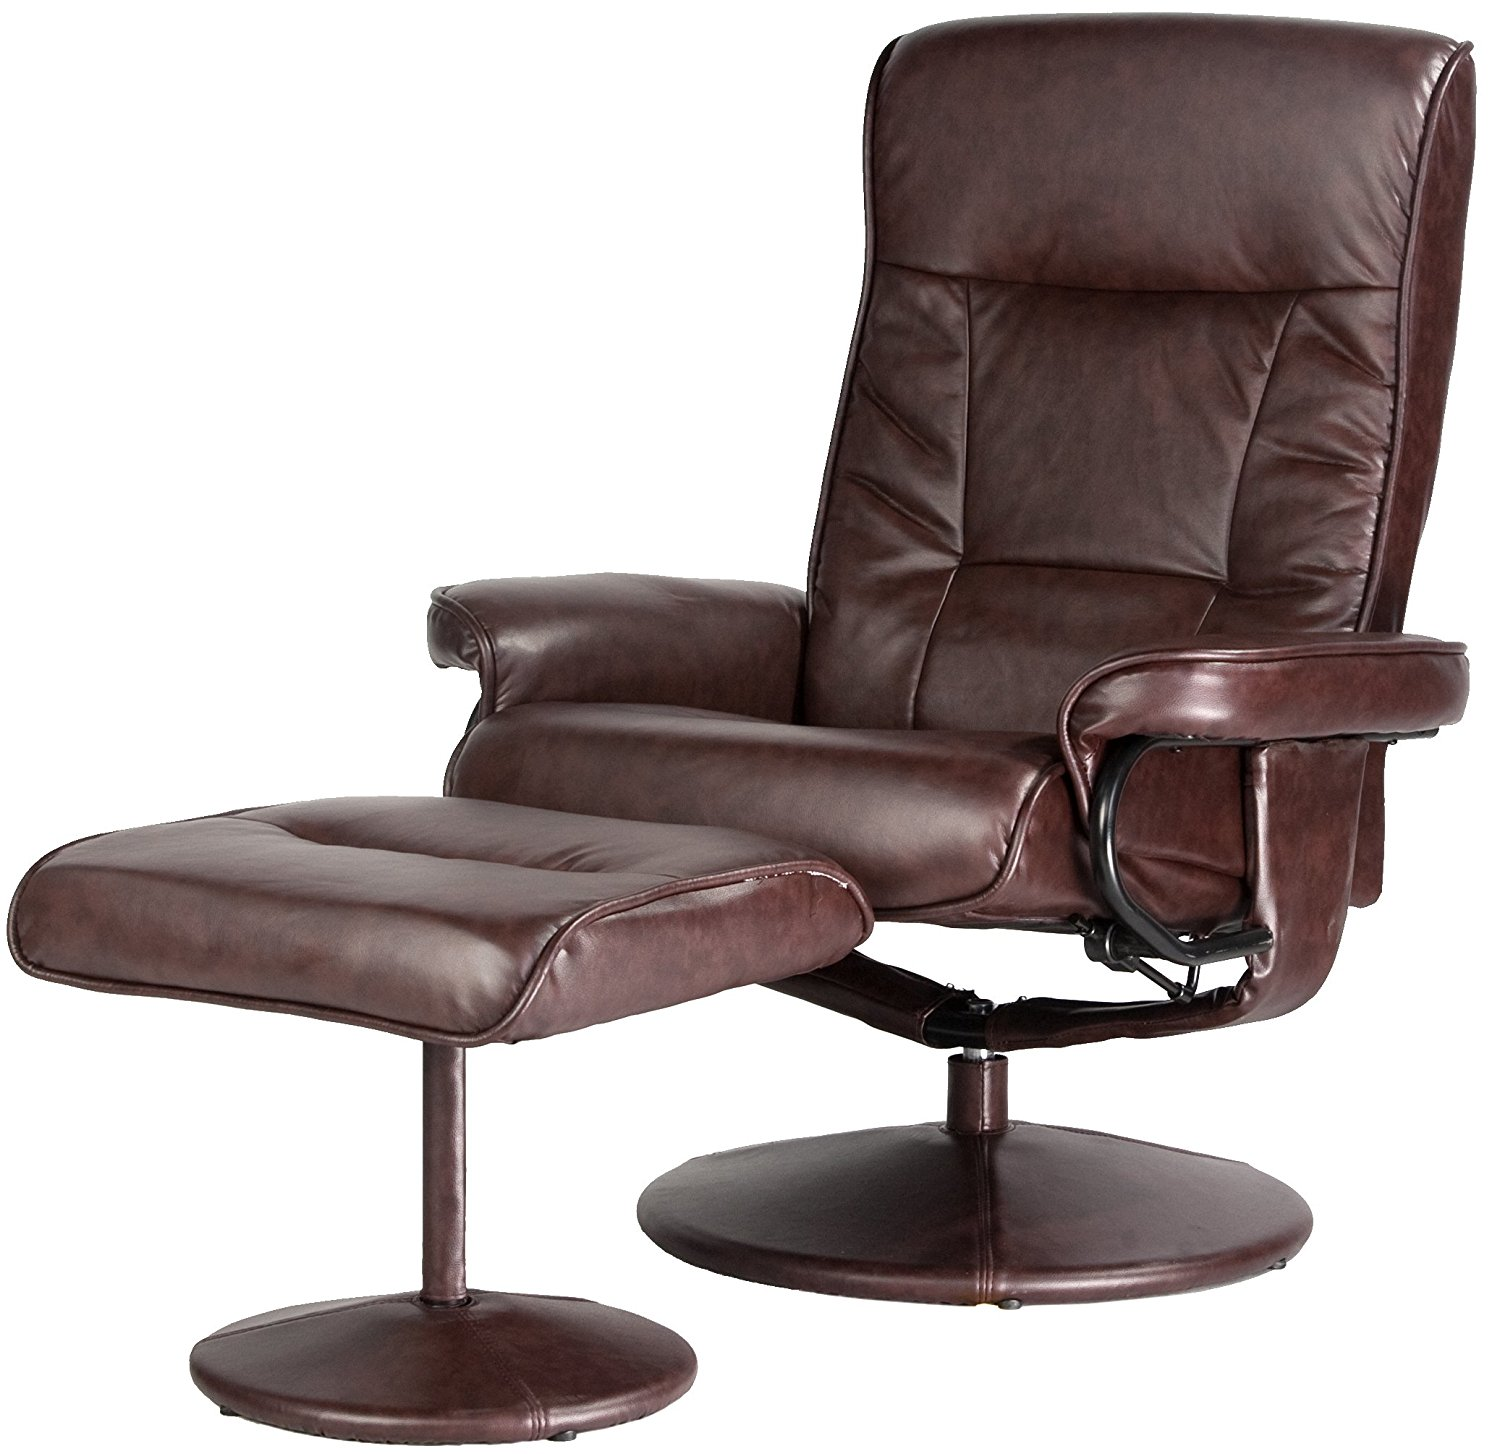 Massage Chairs 10 Best Massage Chairs in 2018 With Price Guide